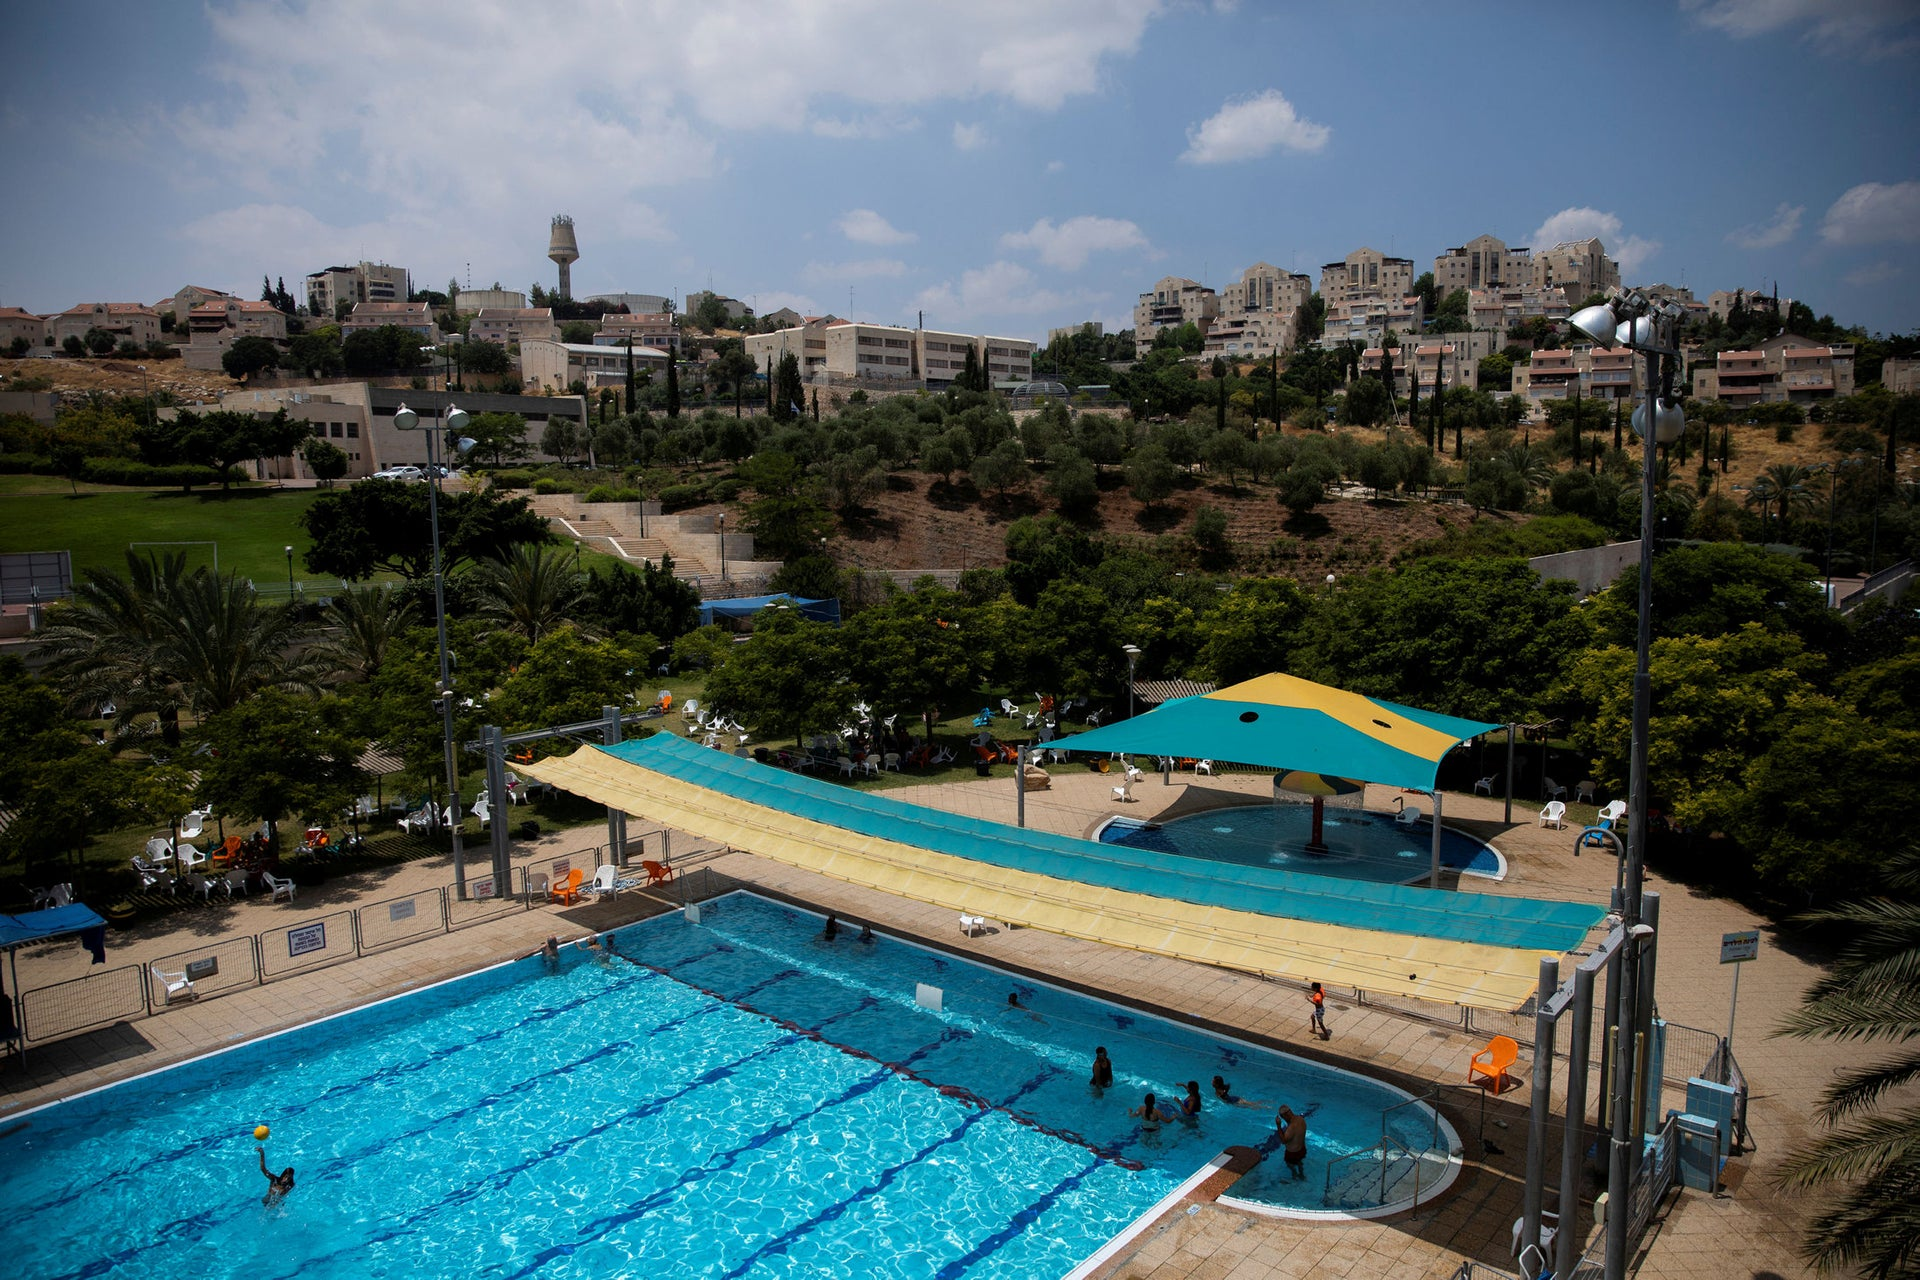 A public pool in the Israeli settlement of Maale Adumim